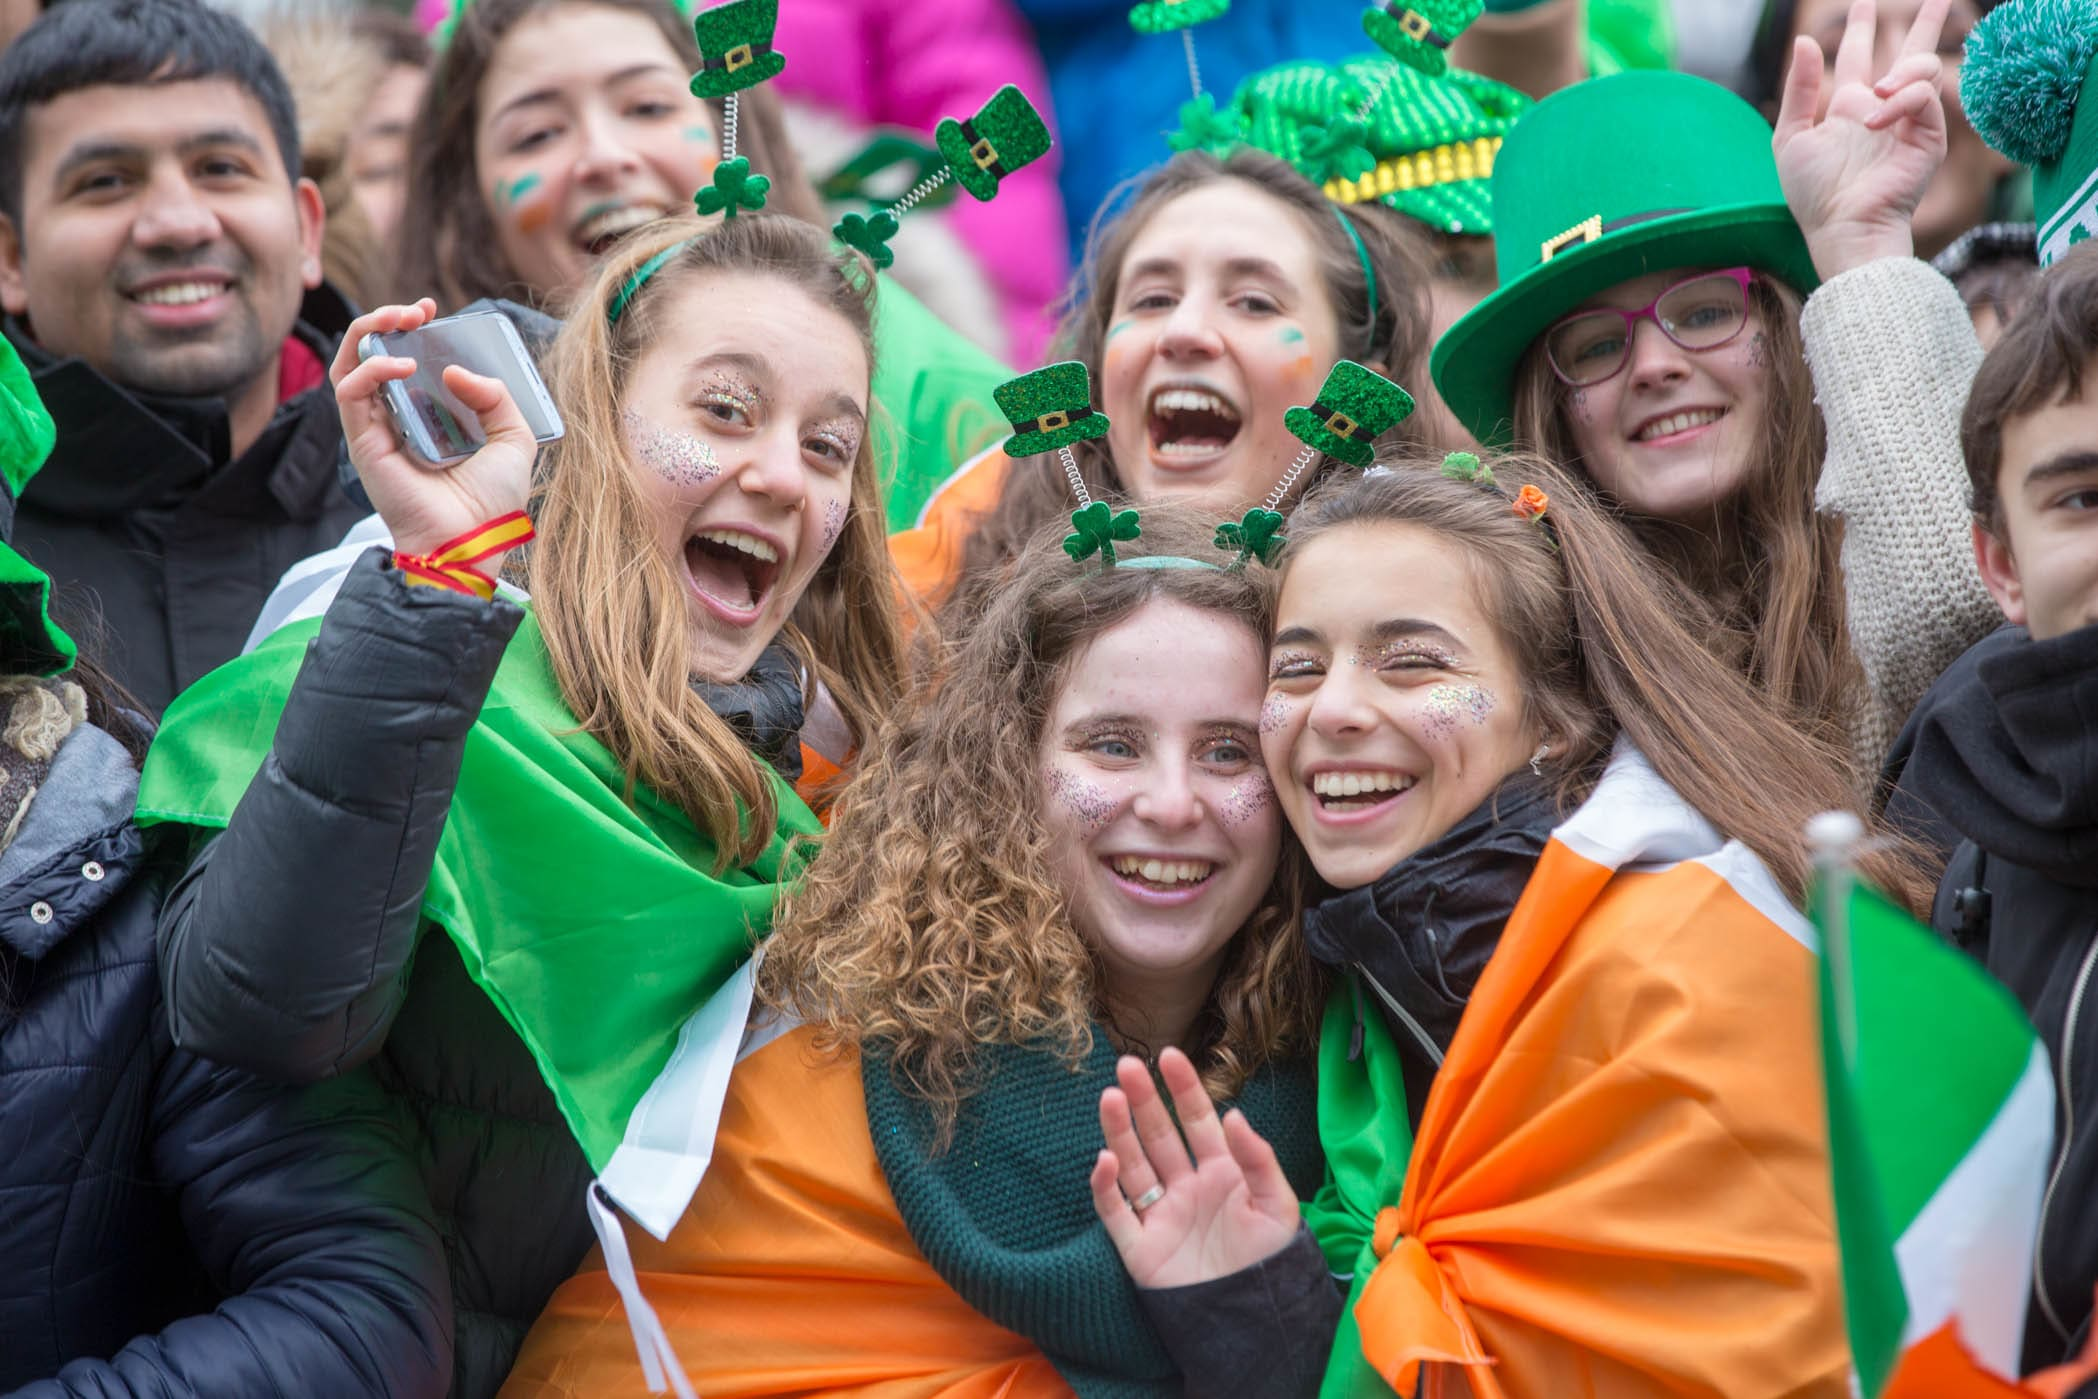 A group of young people celebrating St Patricks Day in Dublin, wearing lots of Irish themed memoriabilia